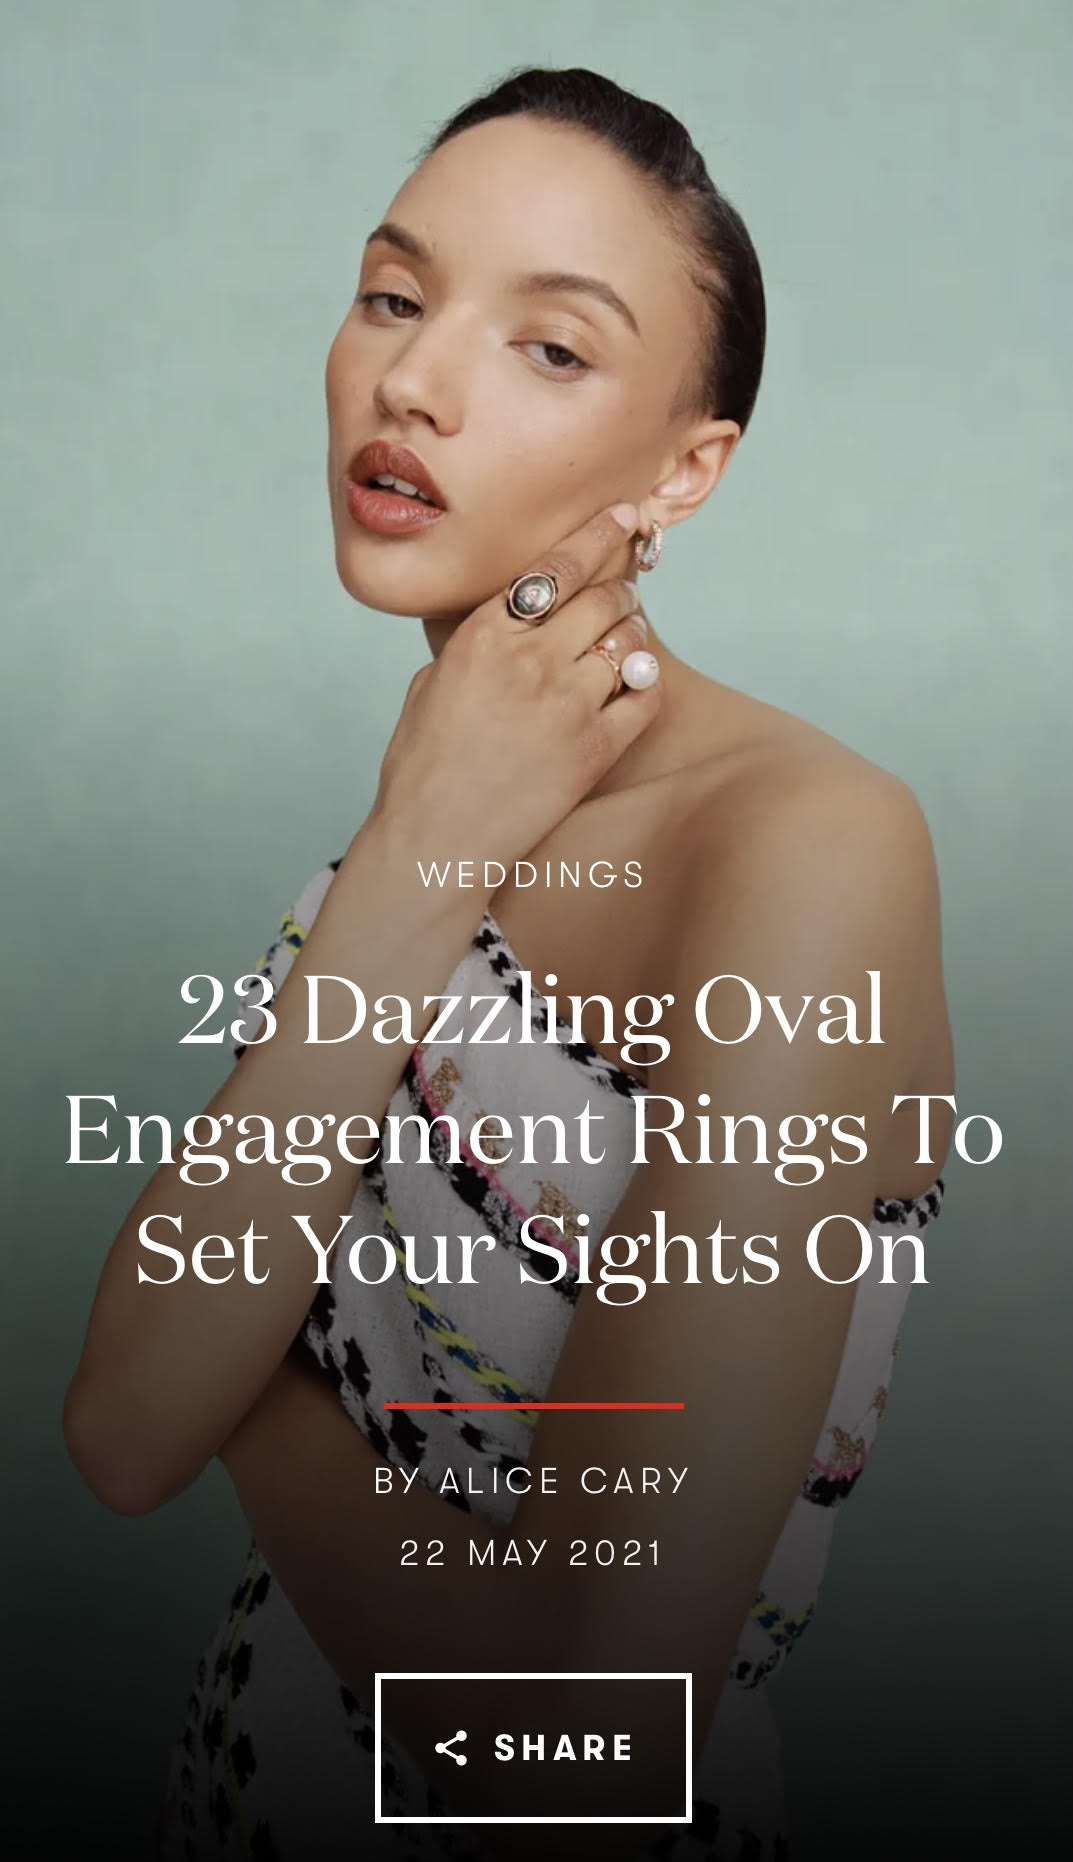 THE TIMELESS APPEAL OF THE CLASSIC OVAL ENGAGEMENT RING